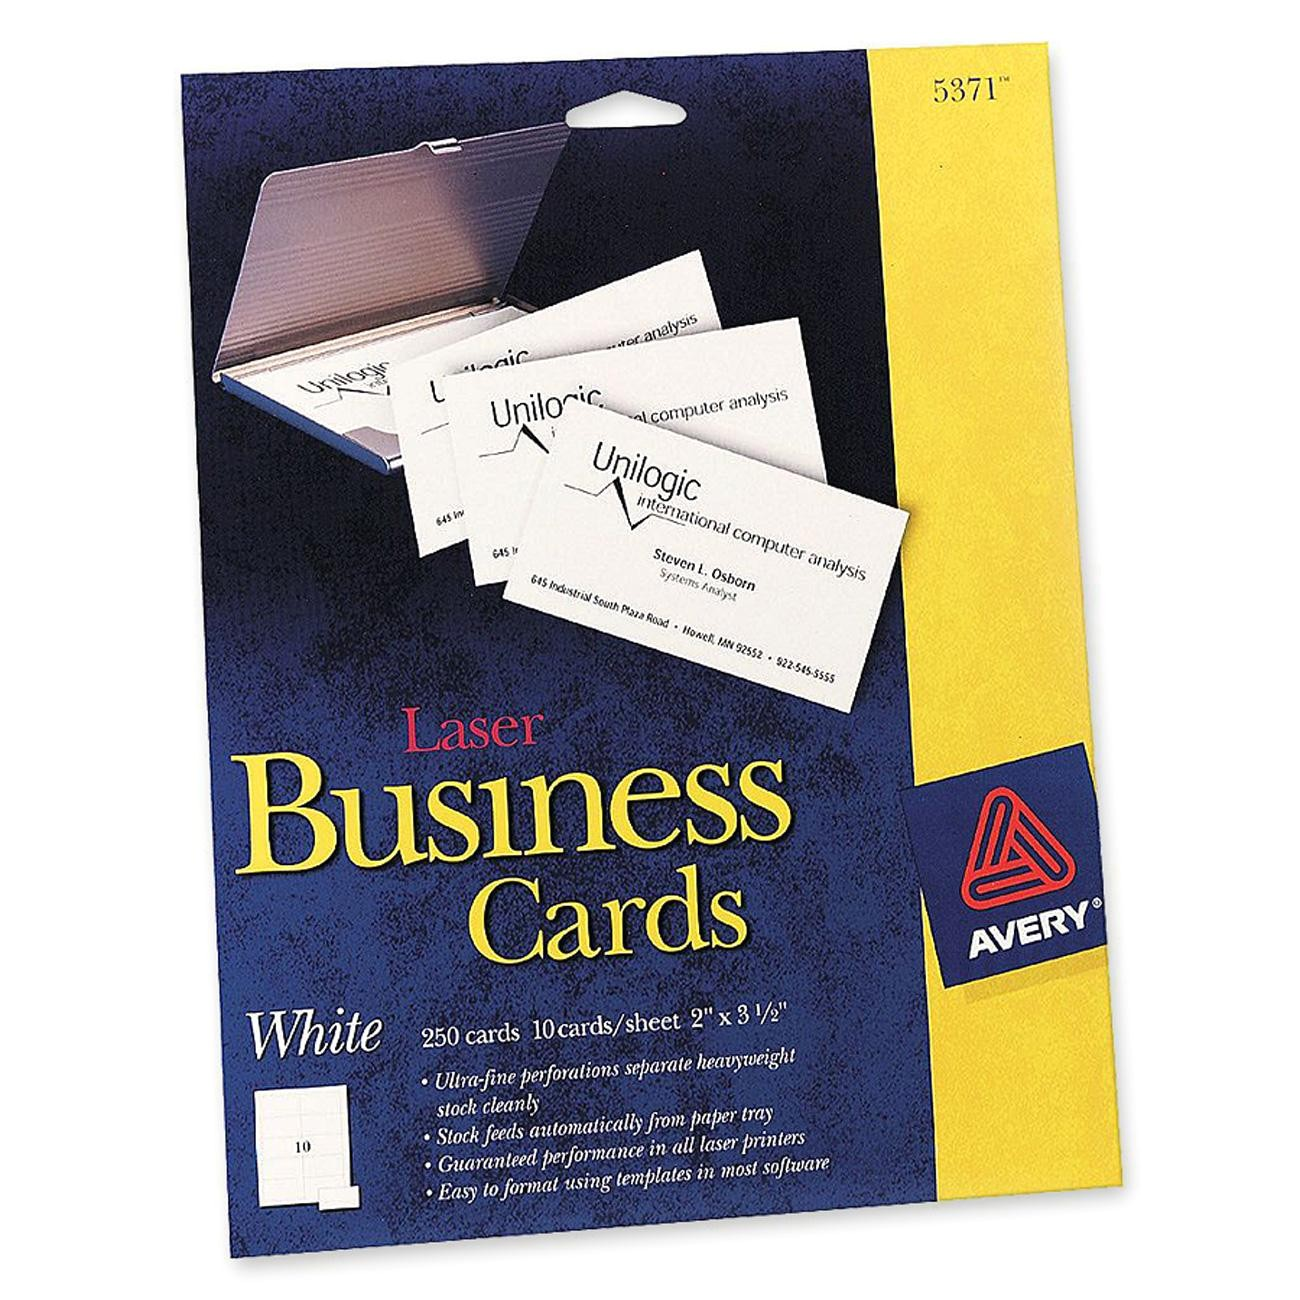 laser perforated business card ave5371 2172408 prd1